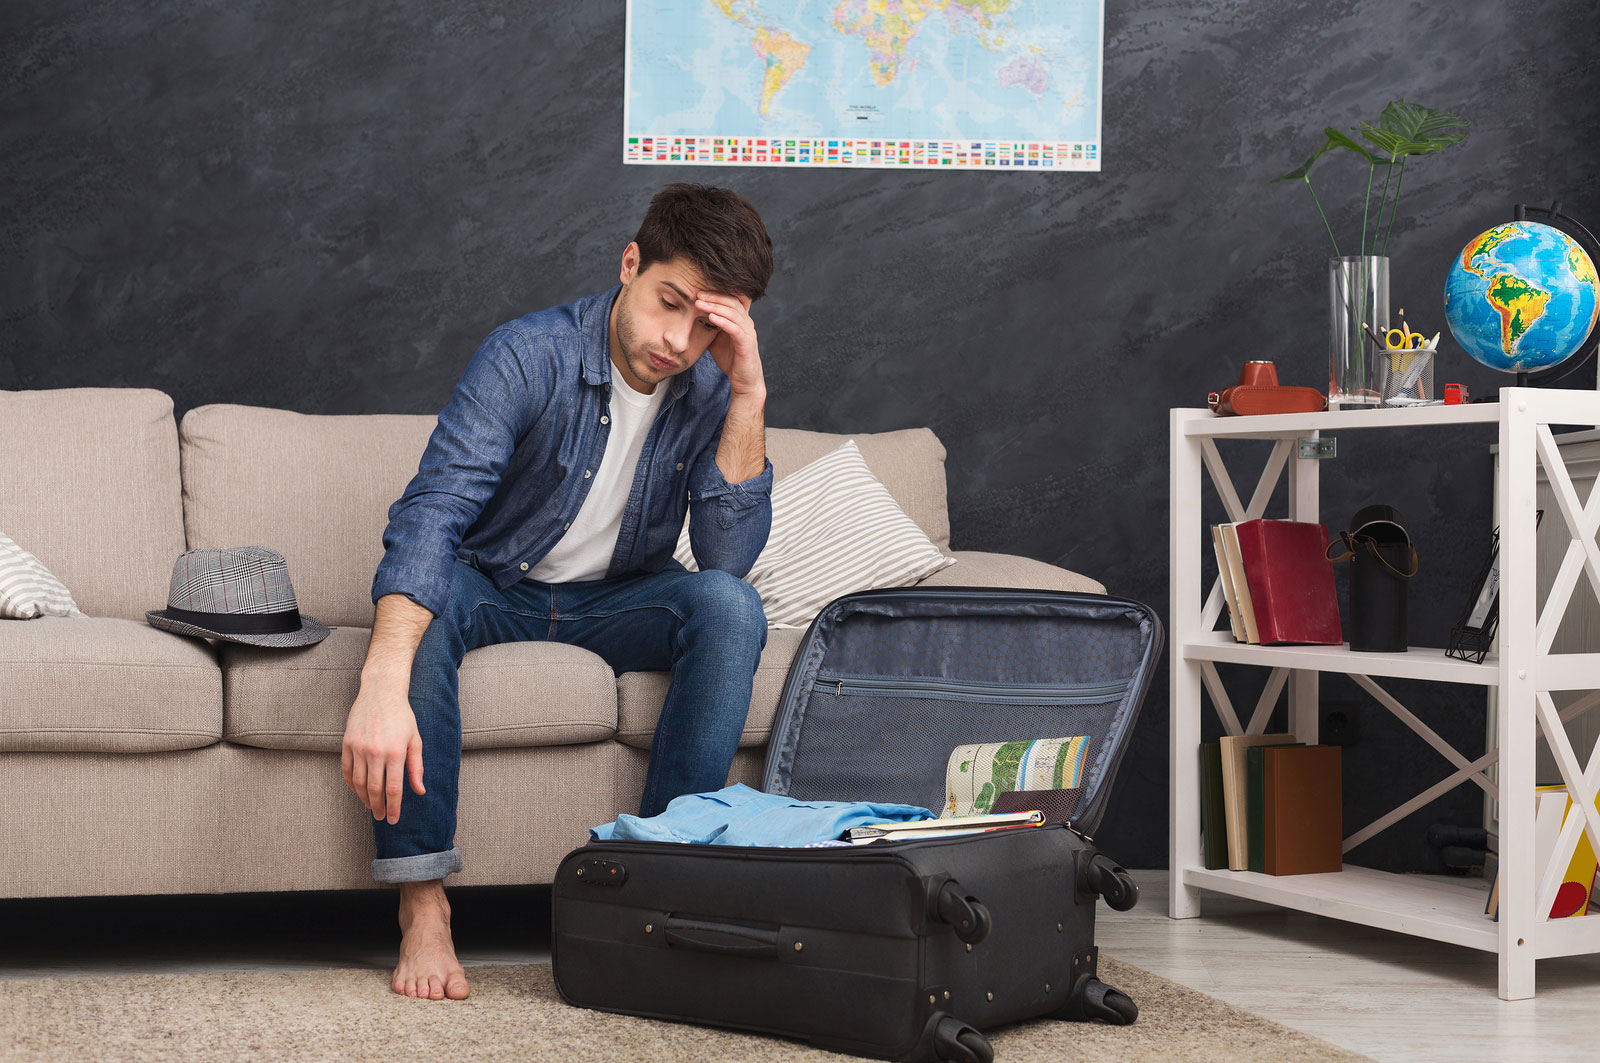 Space-Saving Packing Tips for Your Next Travel Adventure